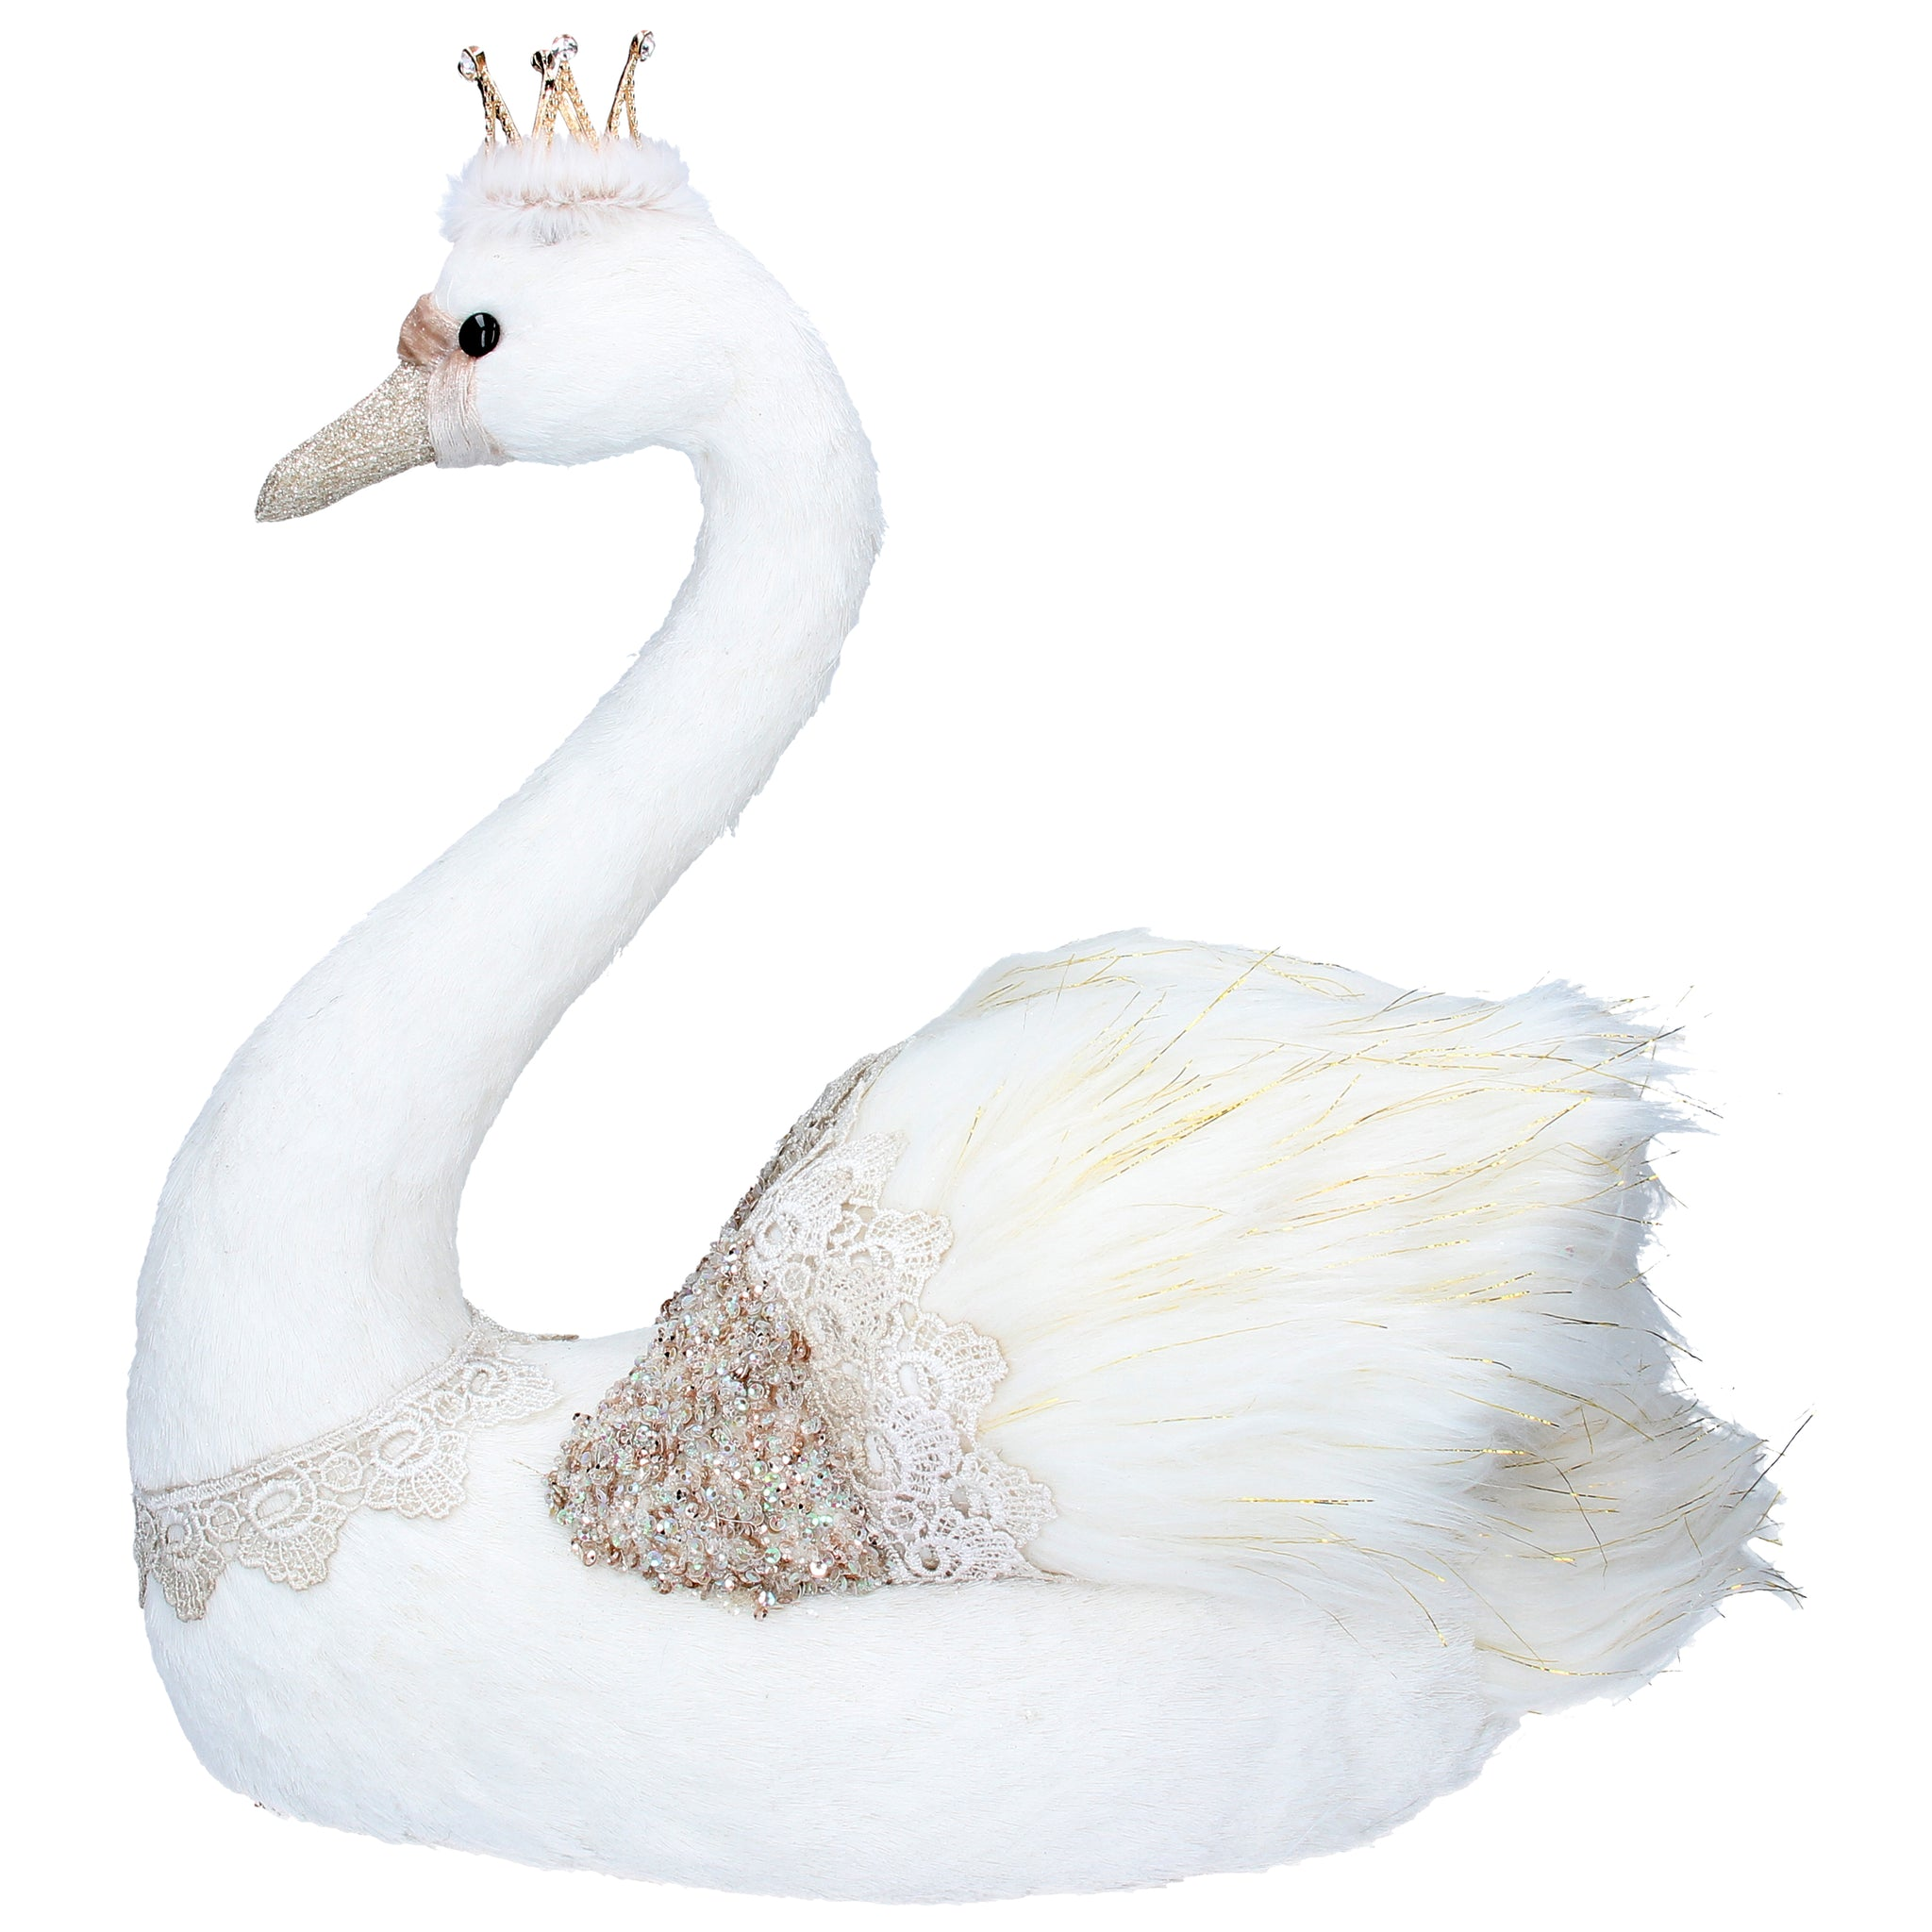 cadeauxwells - Large Cream/Gold Fabric/Feather Swan Ornament, - Gisela Graham - Seasonal